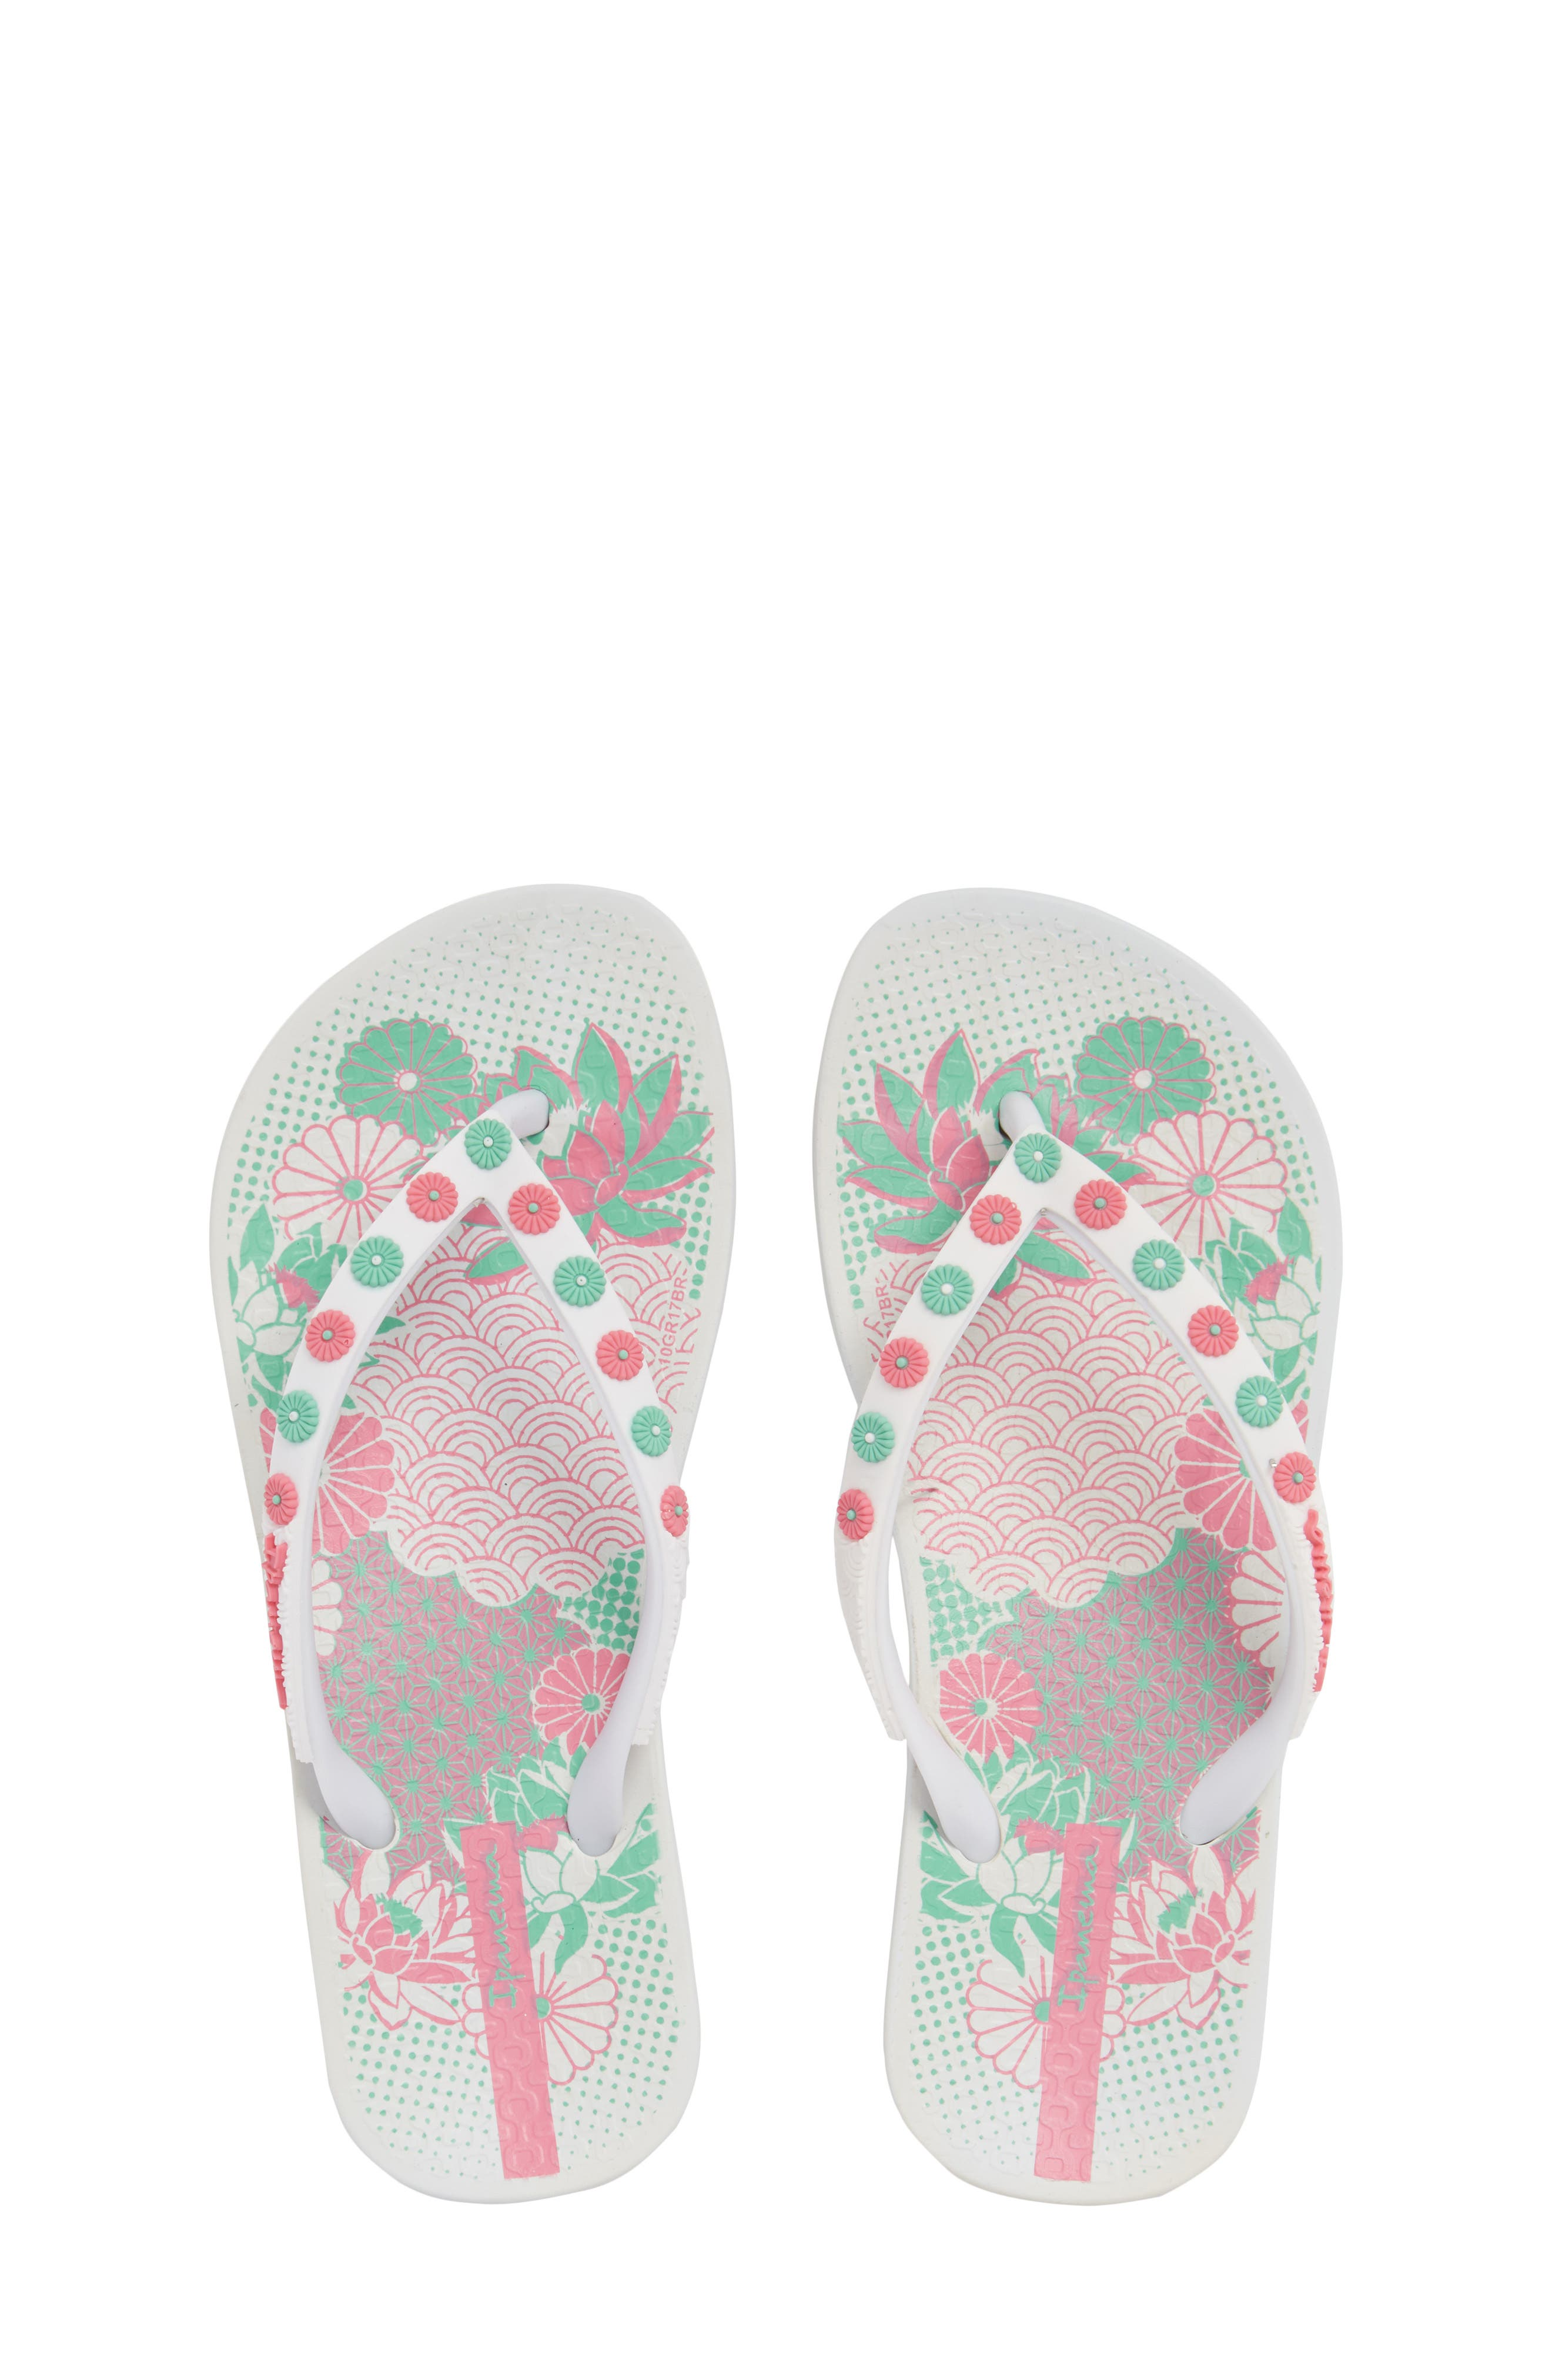 Ana Lovely Flip Flop,                         Main,                         color, 100